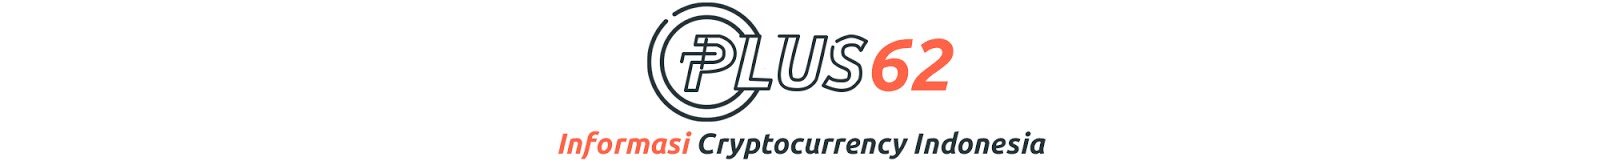 Plus62 - Informasi Cryptocurrency Indonesia